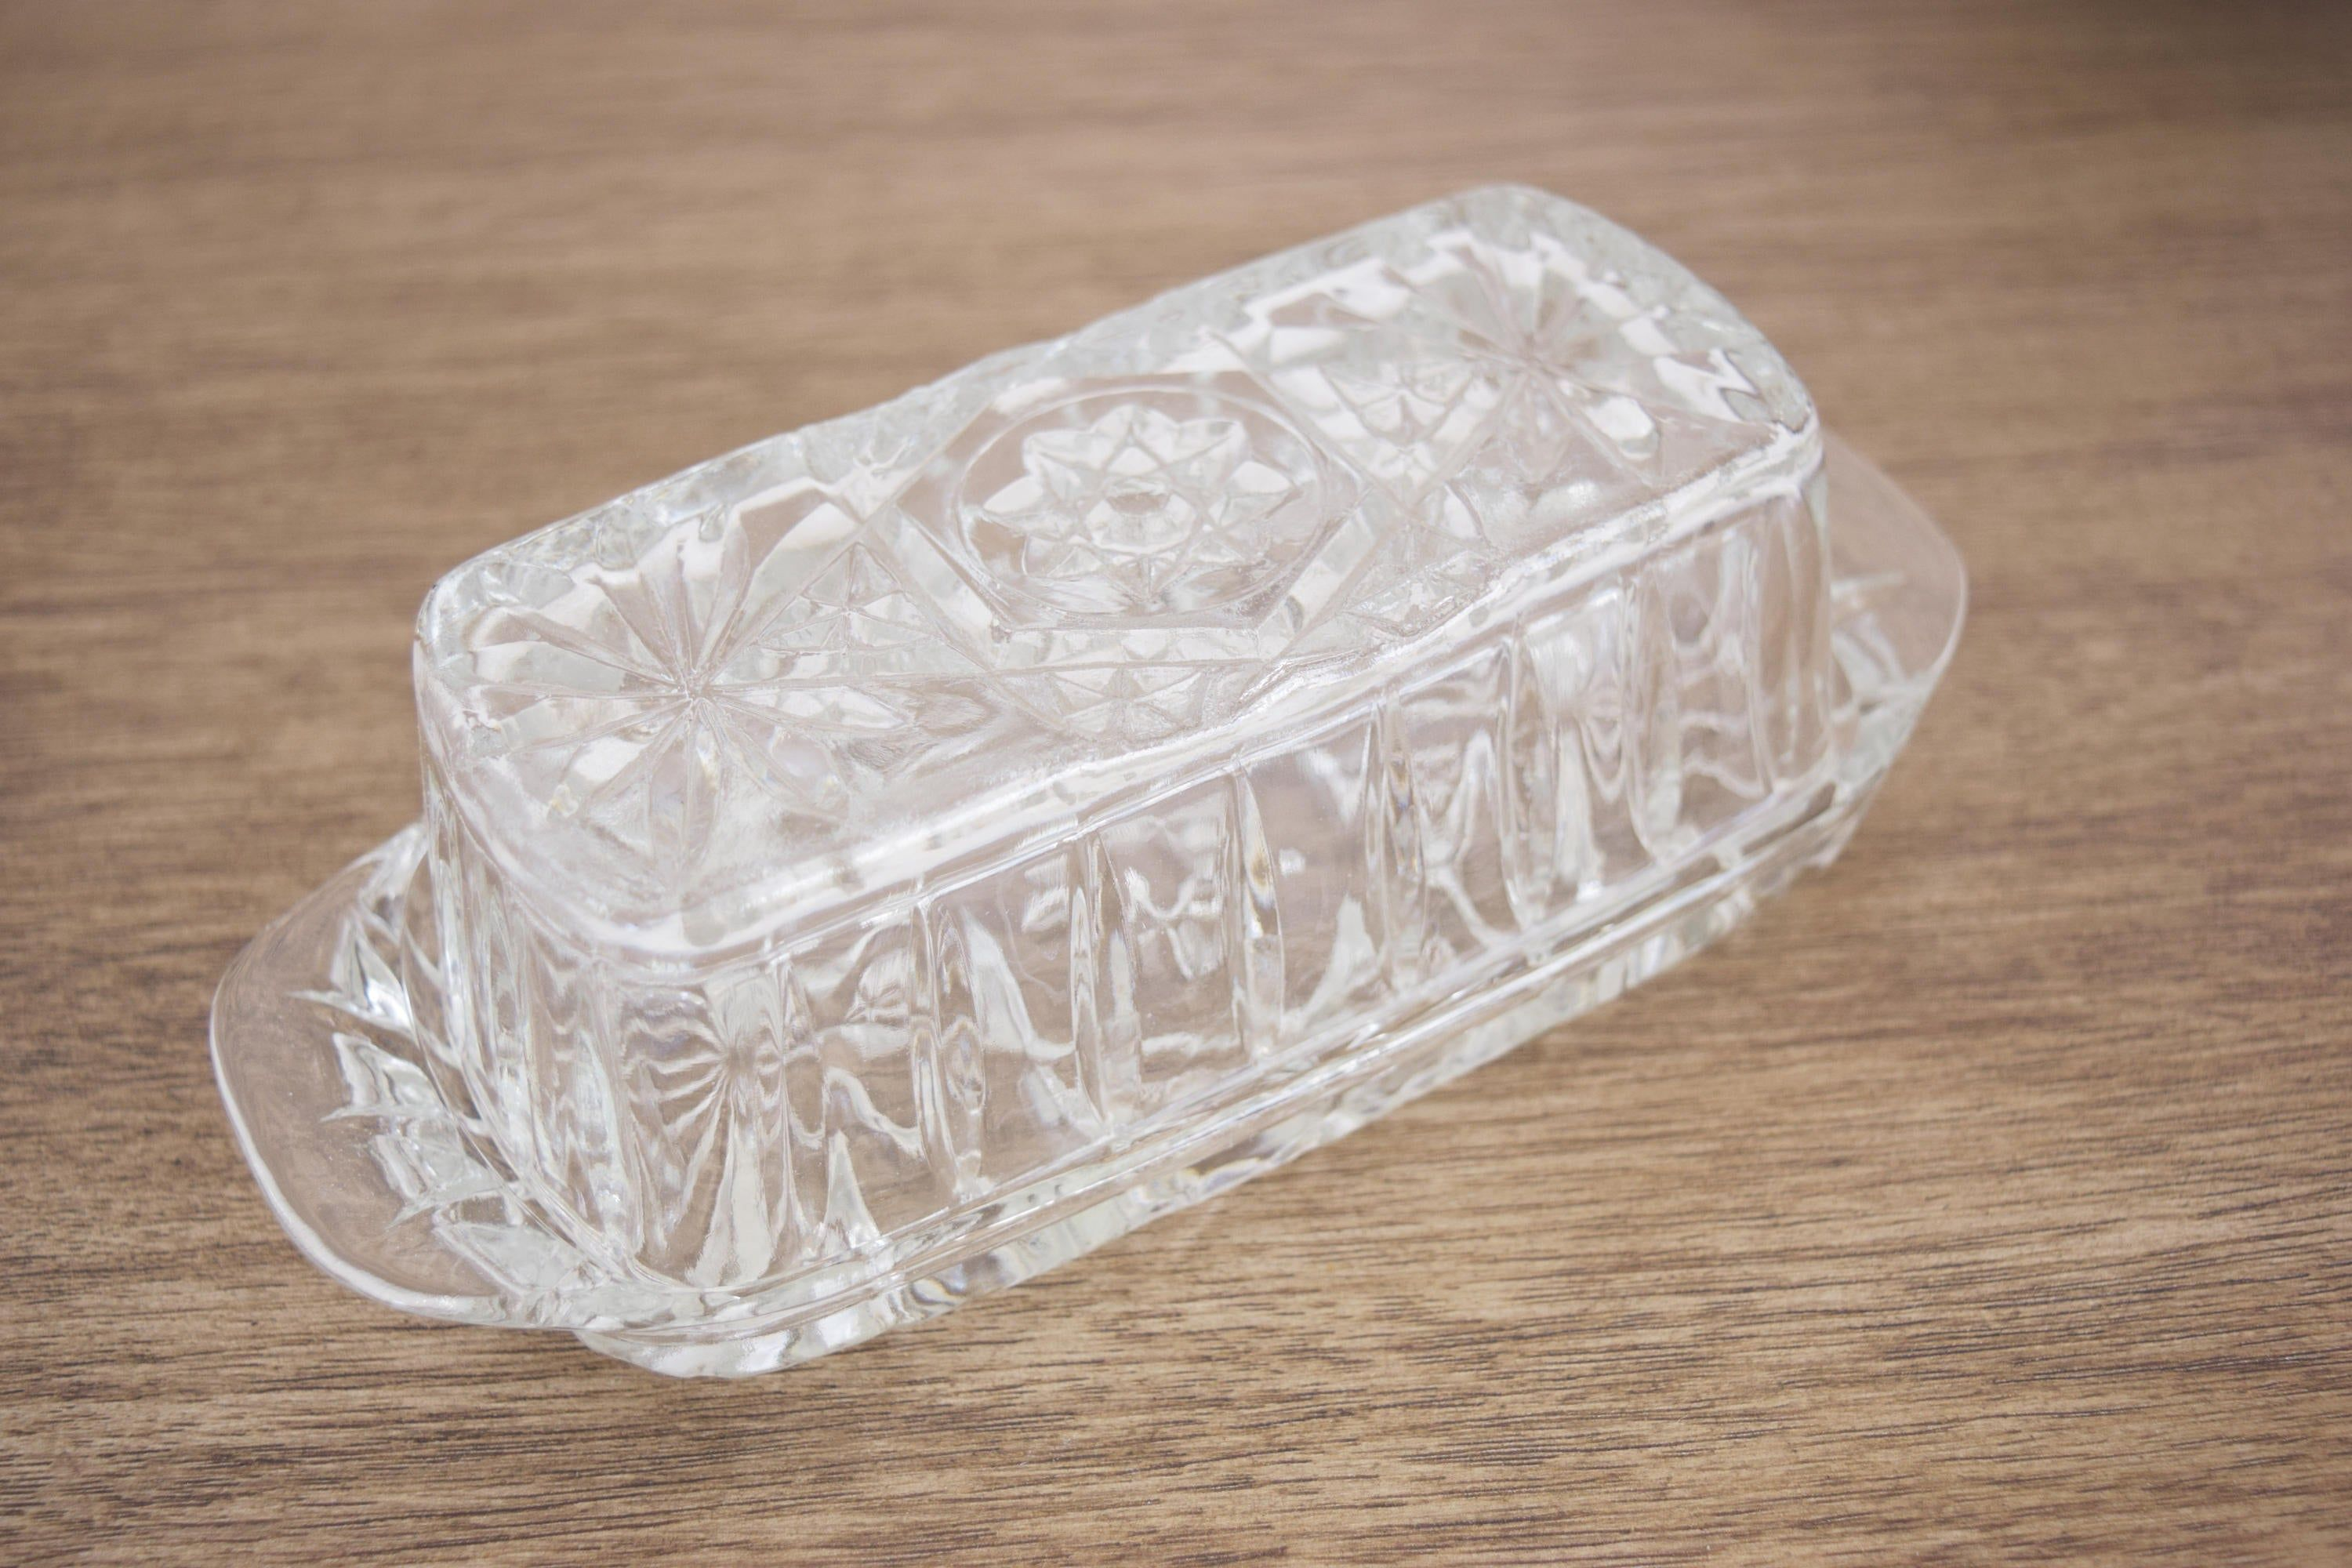 Vintage Clear Glass Butter Dish With Lid Covered Retro Glass Etsy In 2020 Butter Dish Wedding Sweets Toasting Flutes Wedding